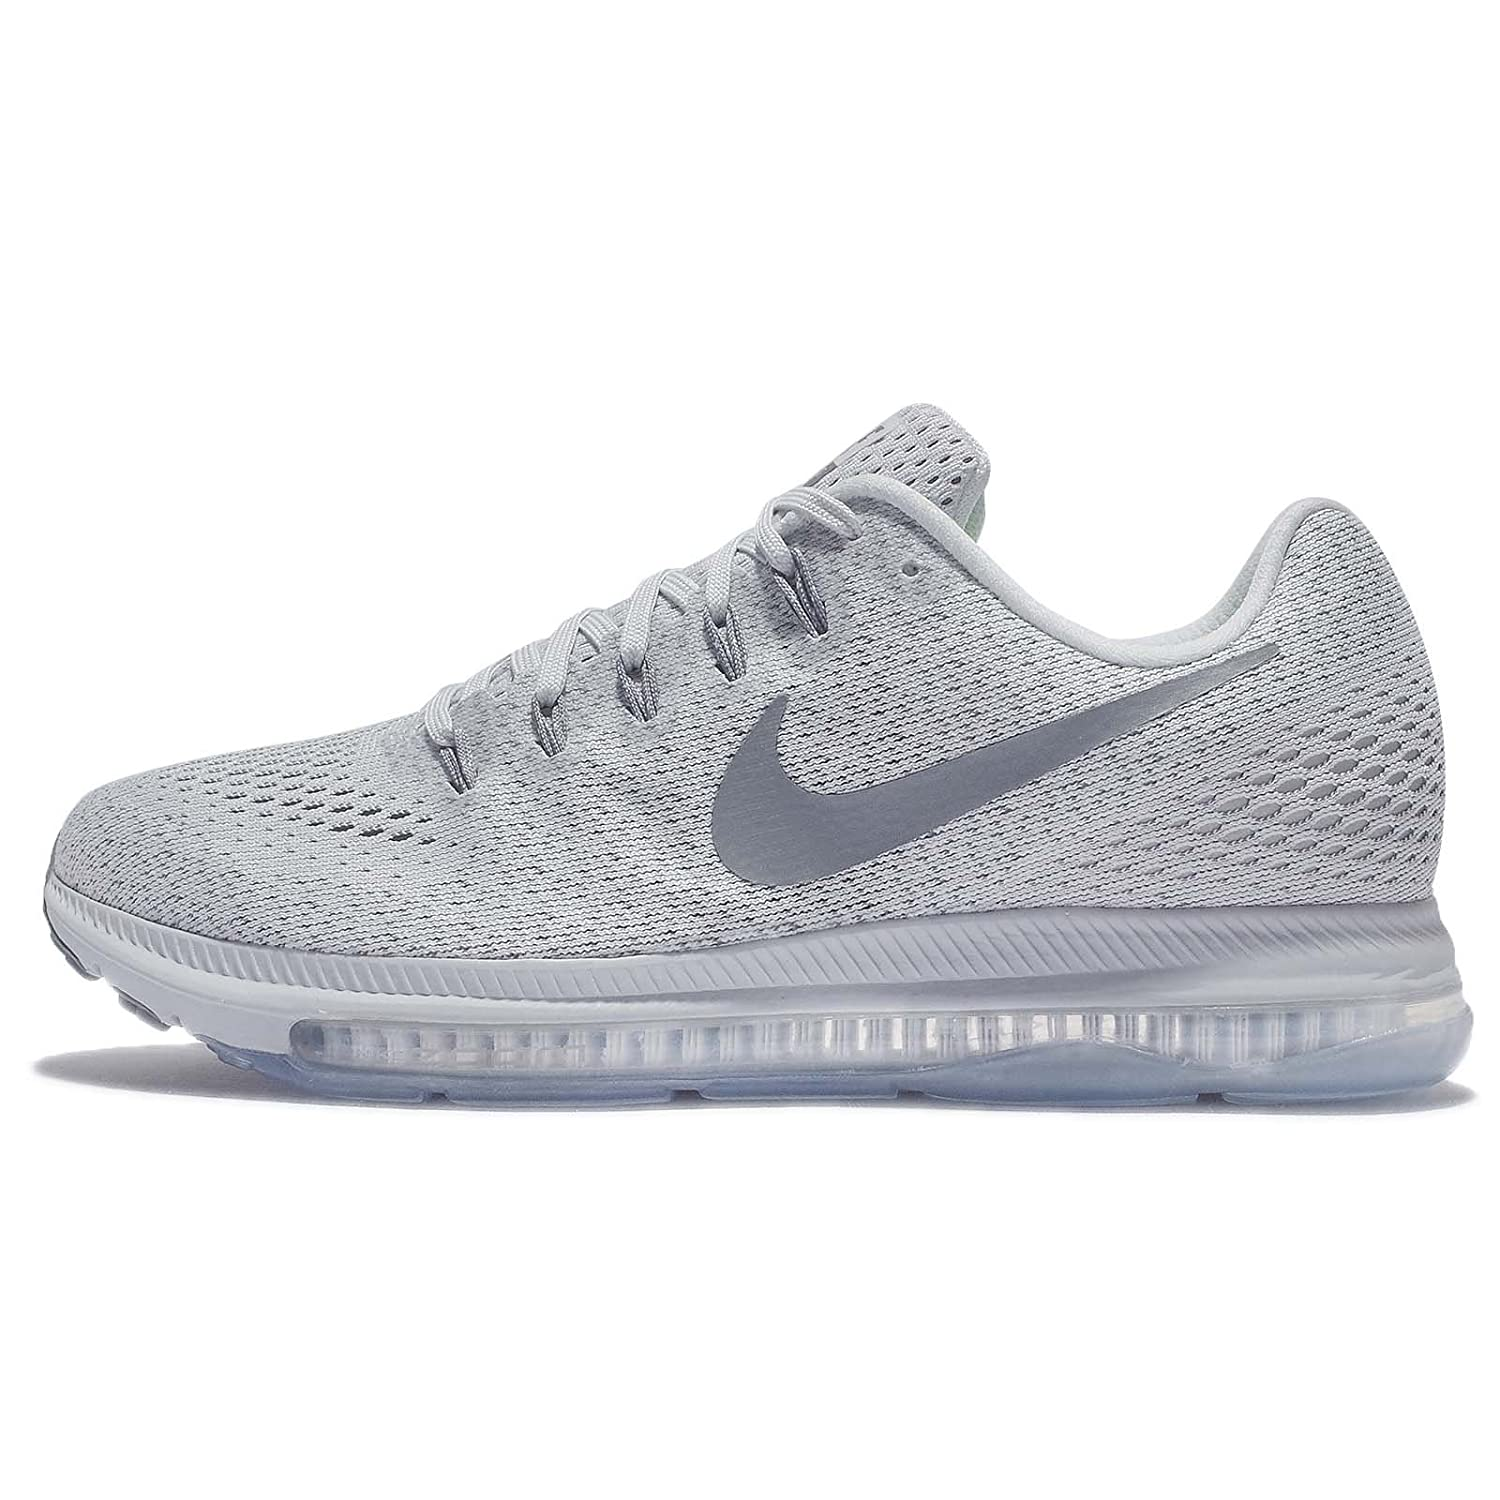 NIKE Women's Zoom All Out Low Running Shoes B076H51TZD 9 B(M) US|Light Grey